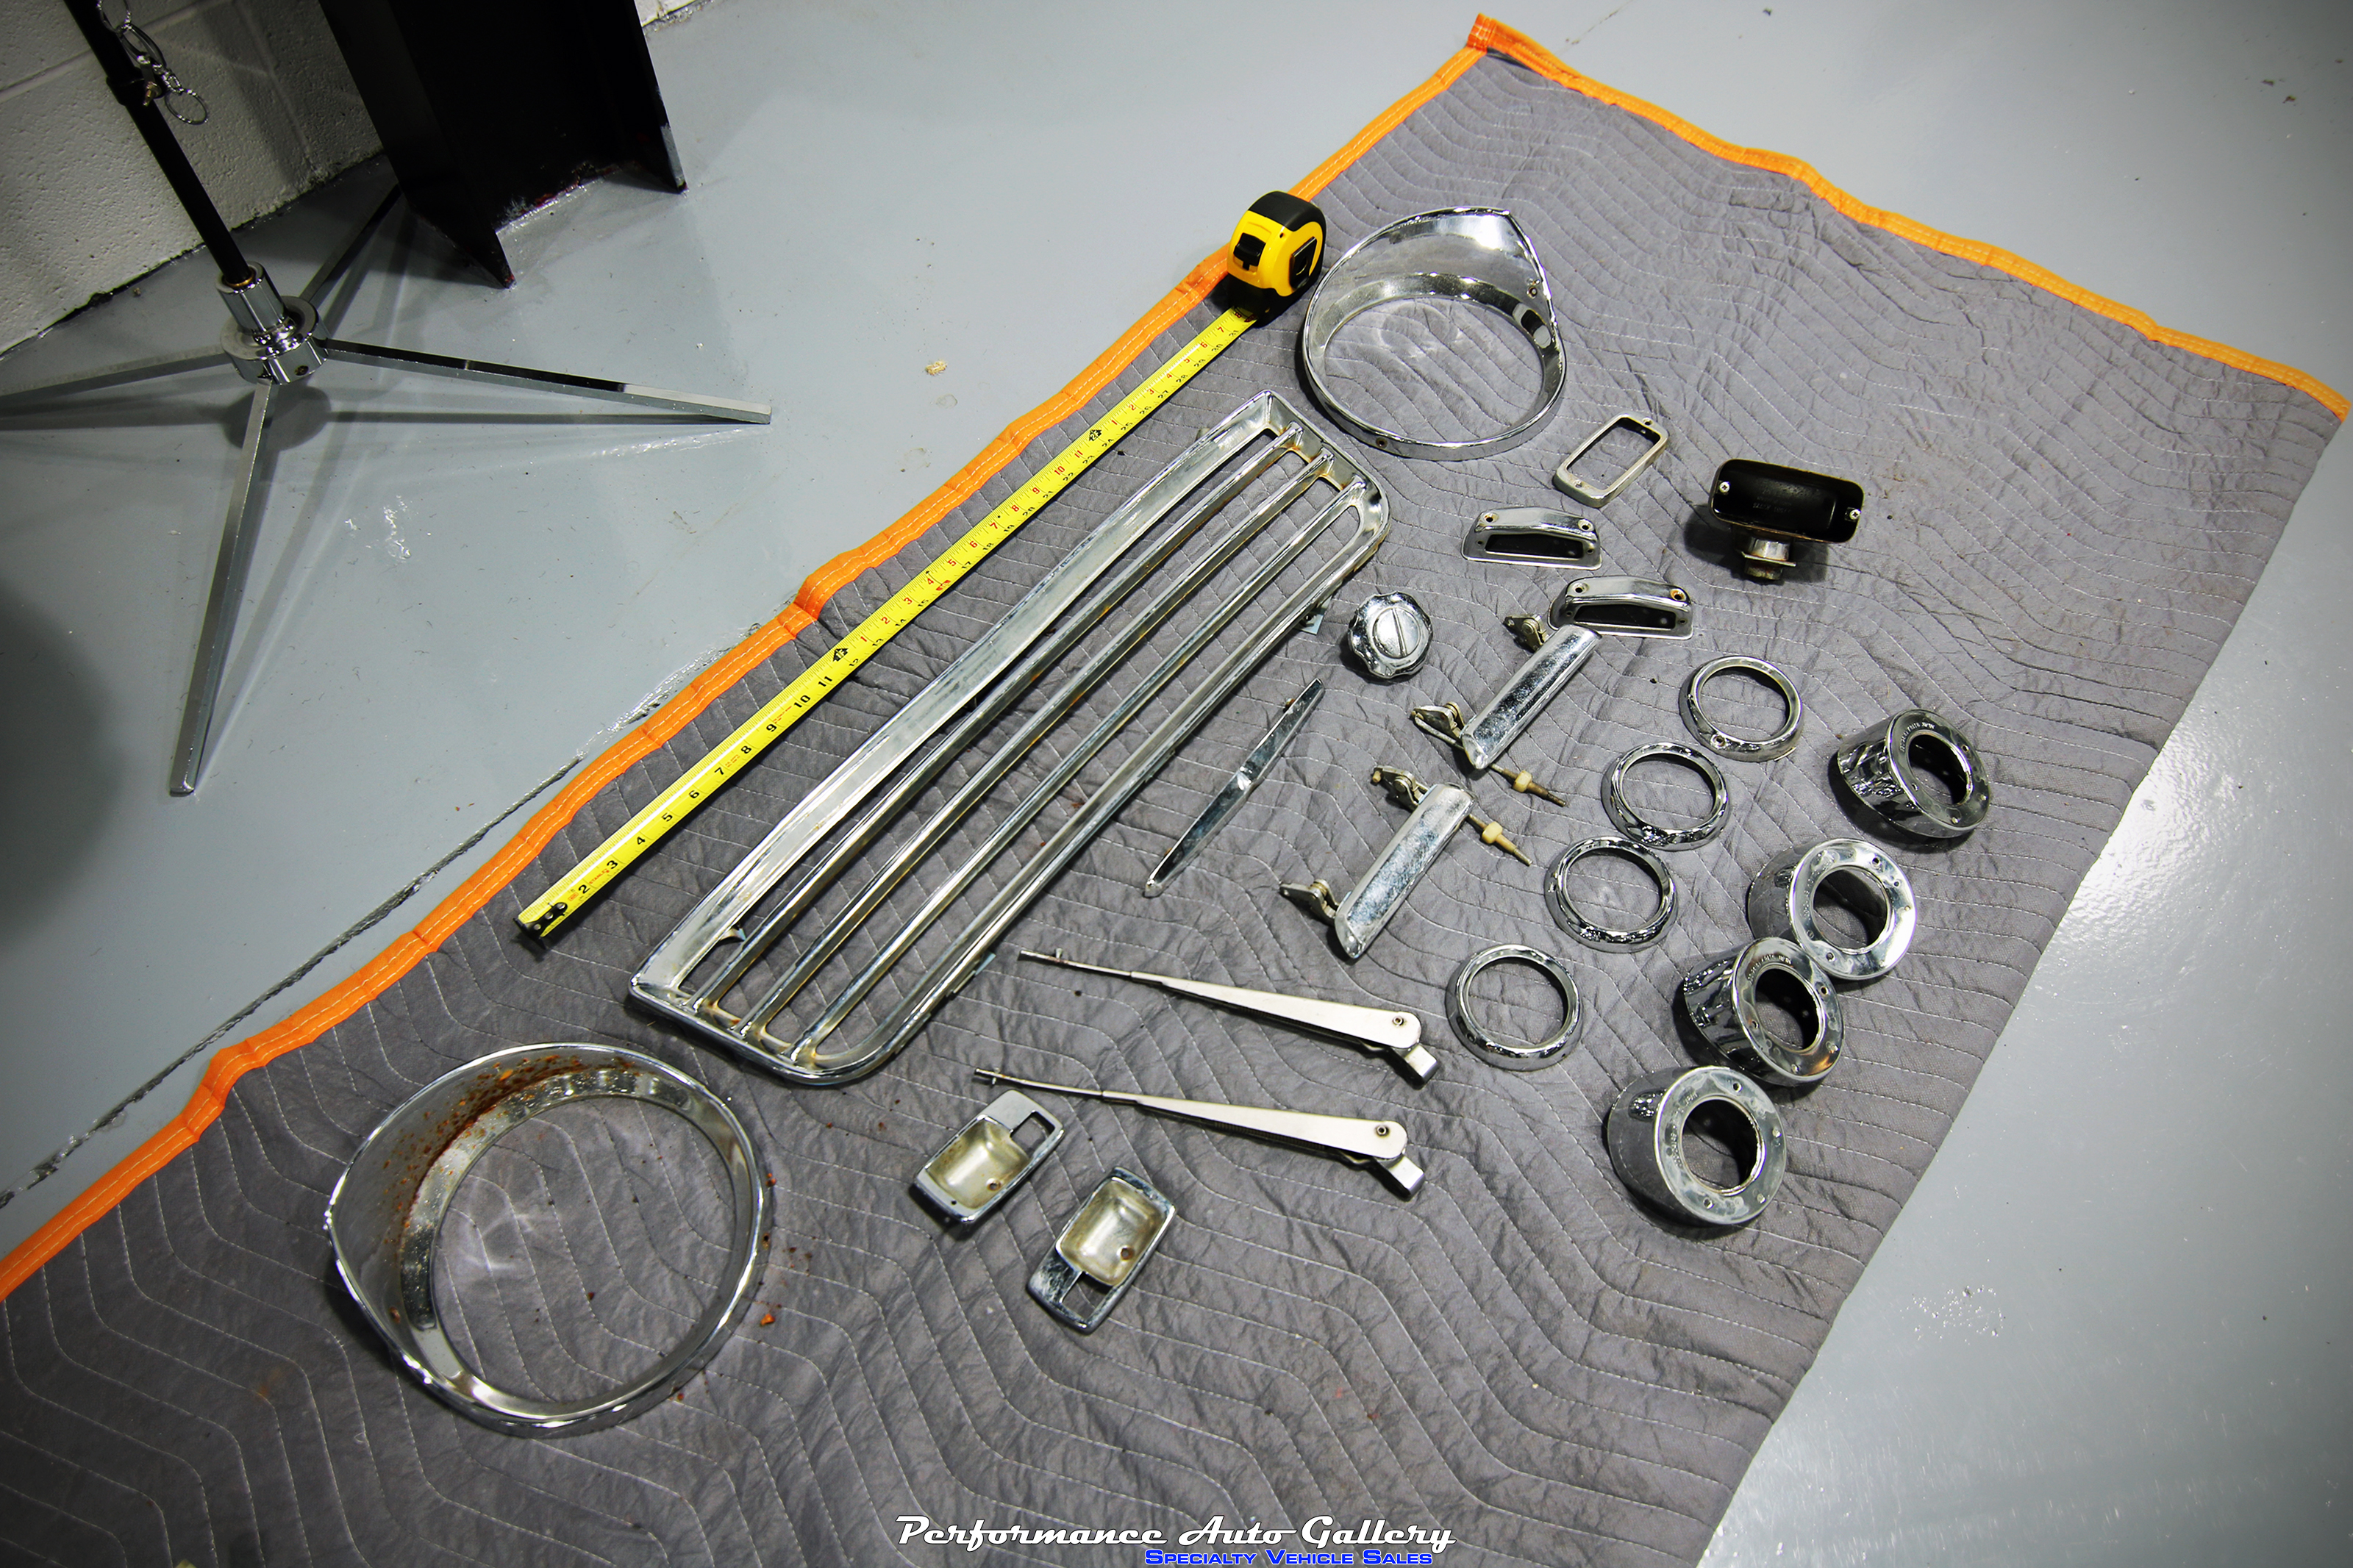 Datsun Parts for Chroming